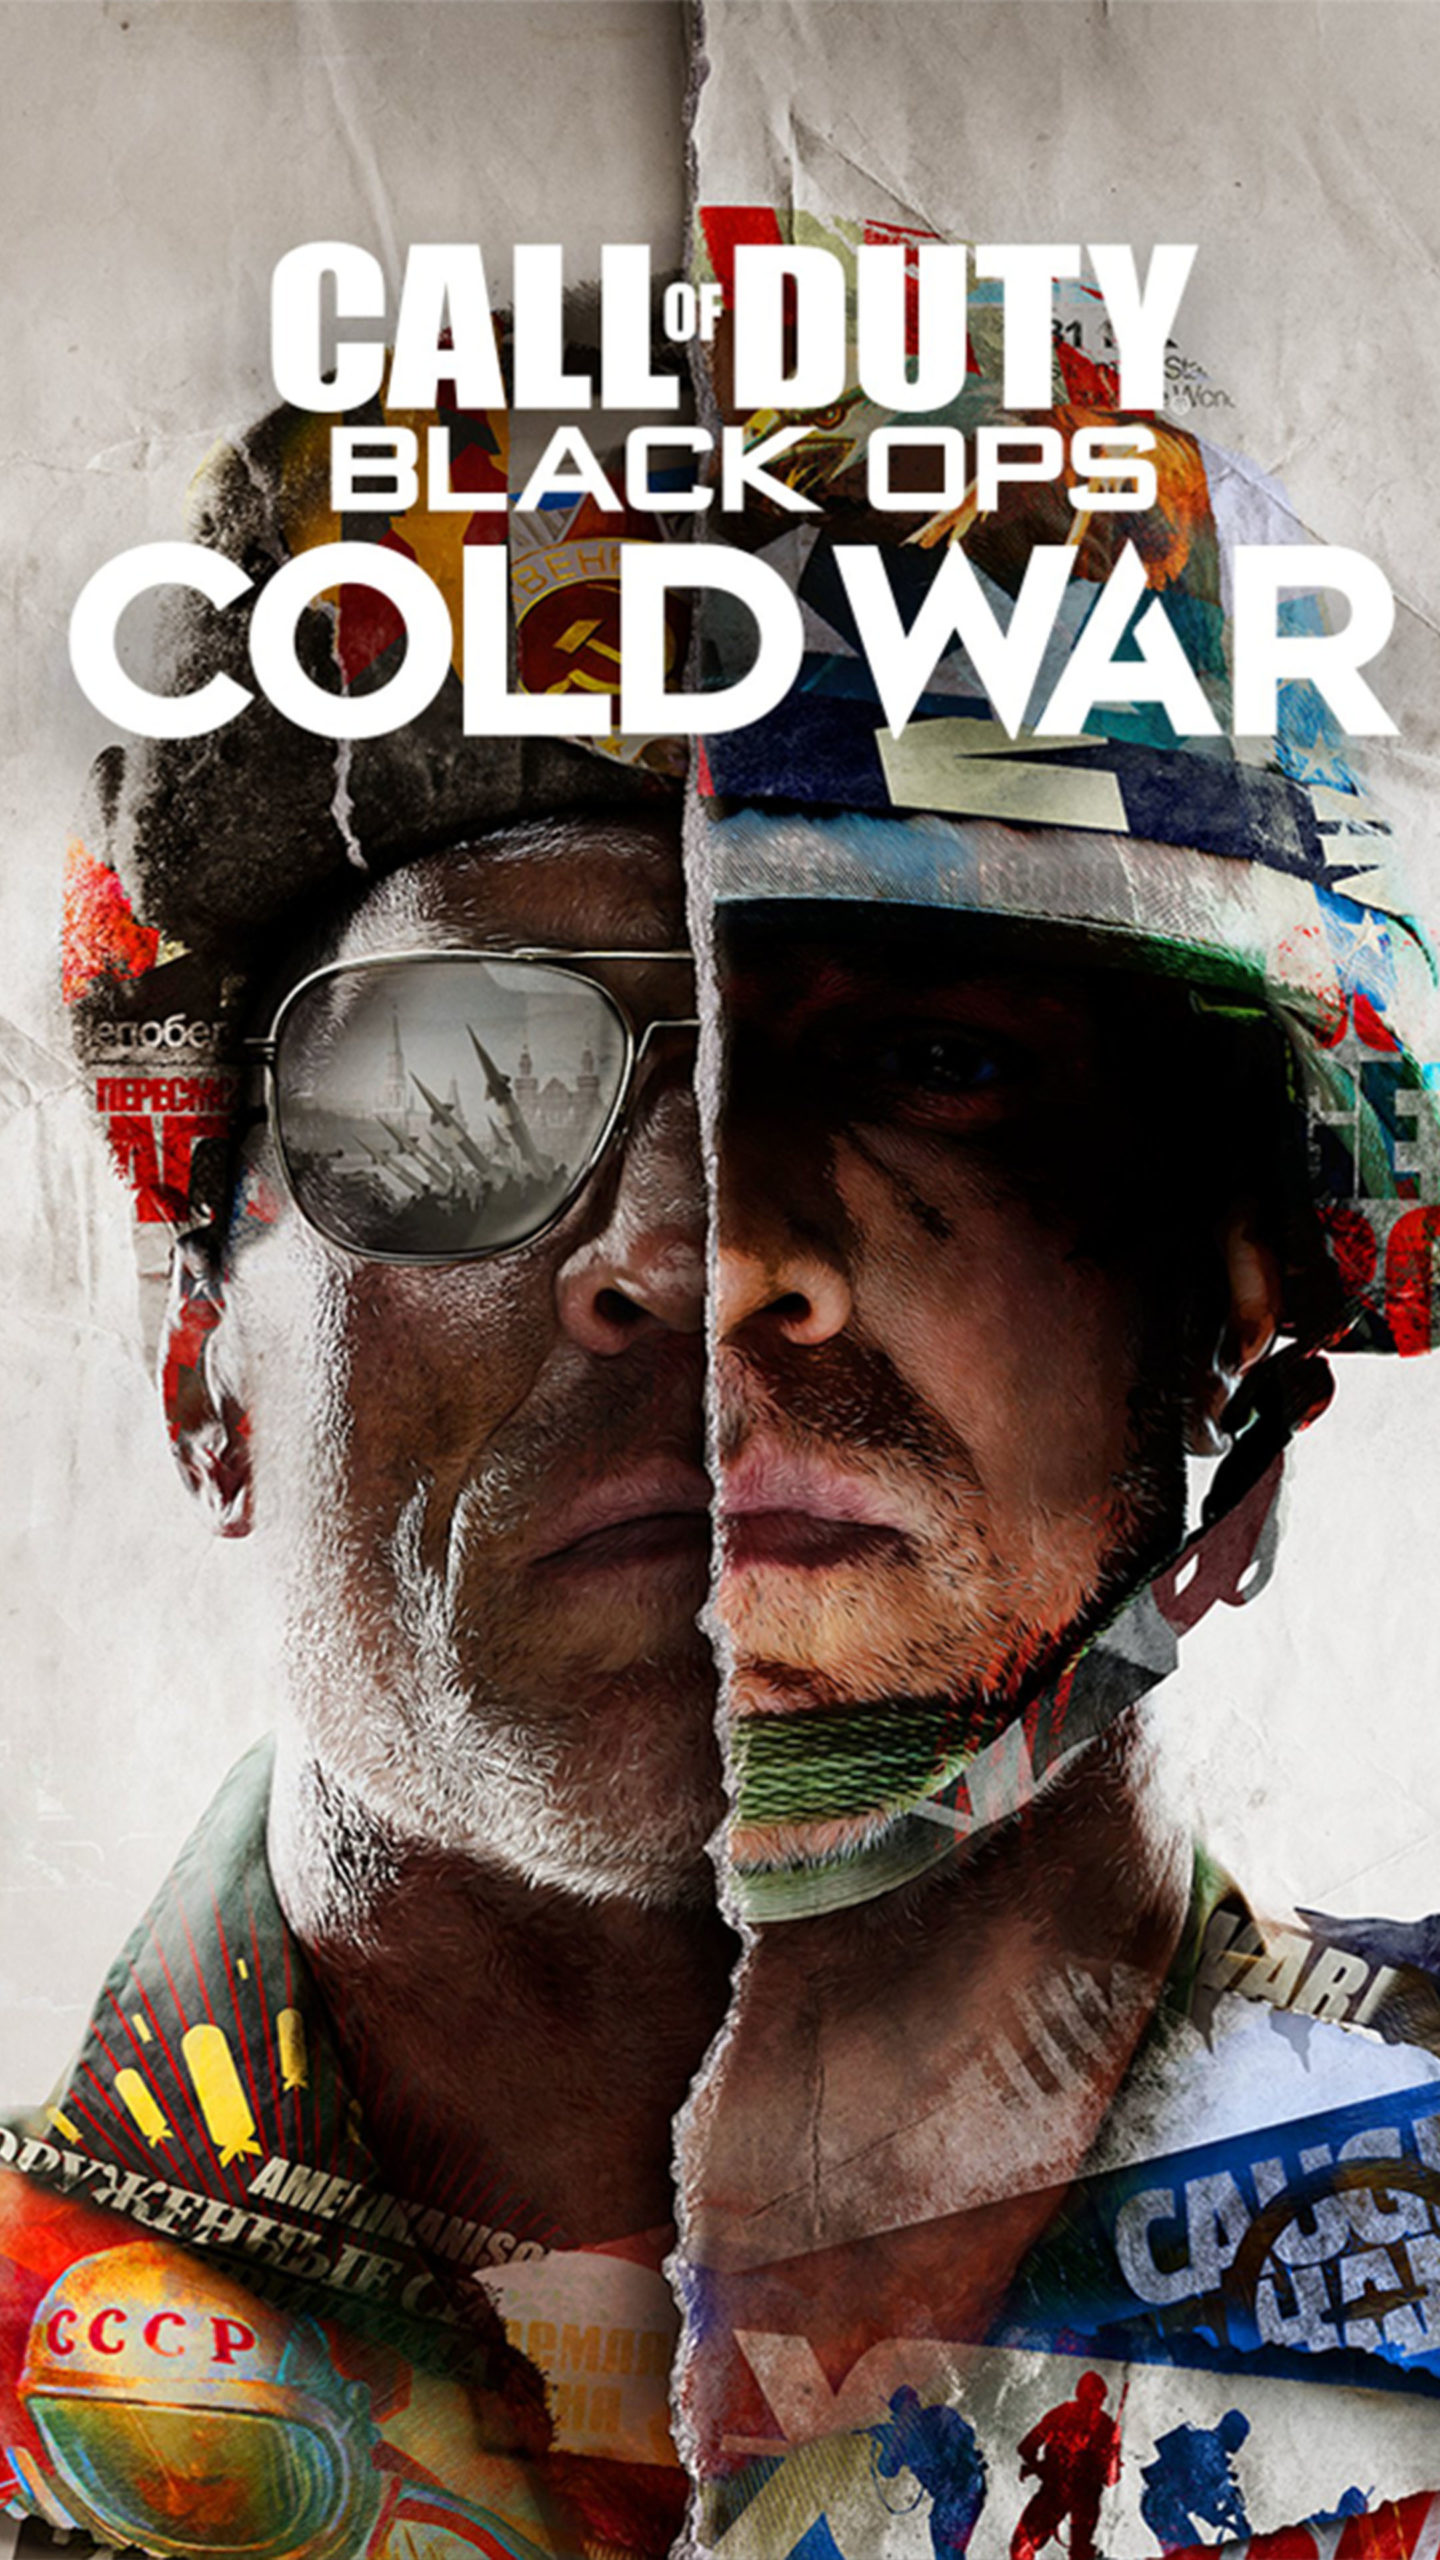 Call of Duty Black OPS Cold War 2020 Poster 4K Ultra HD